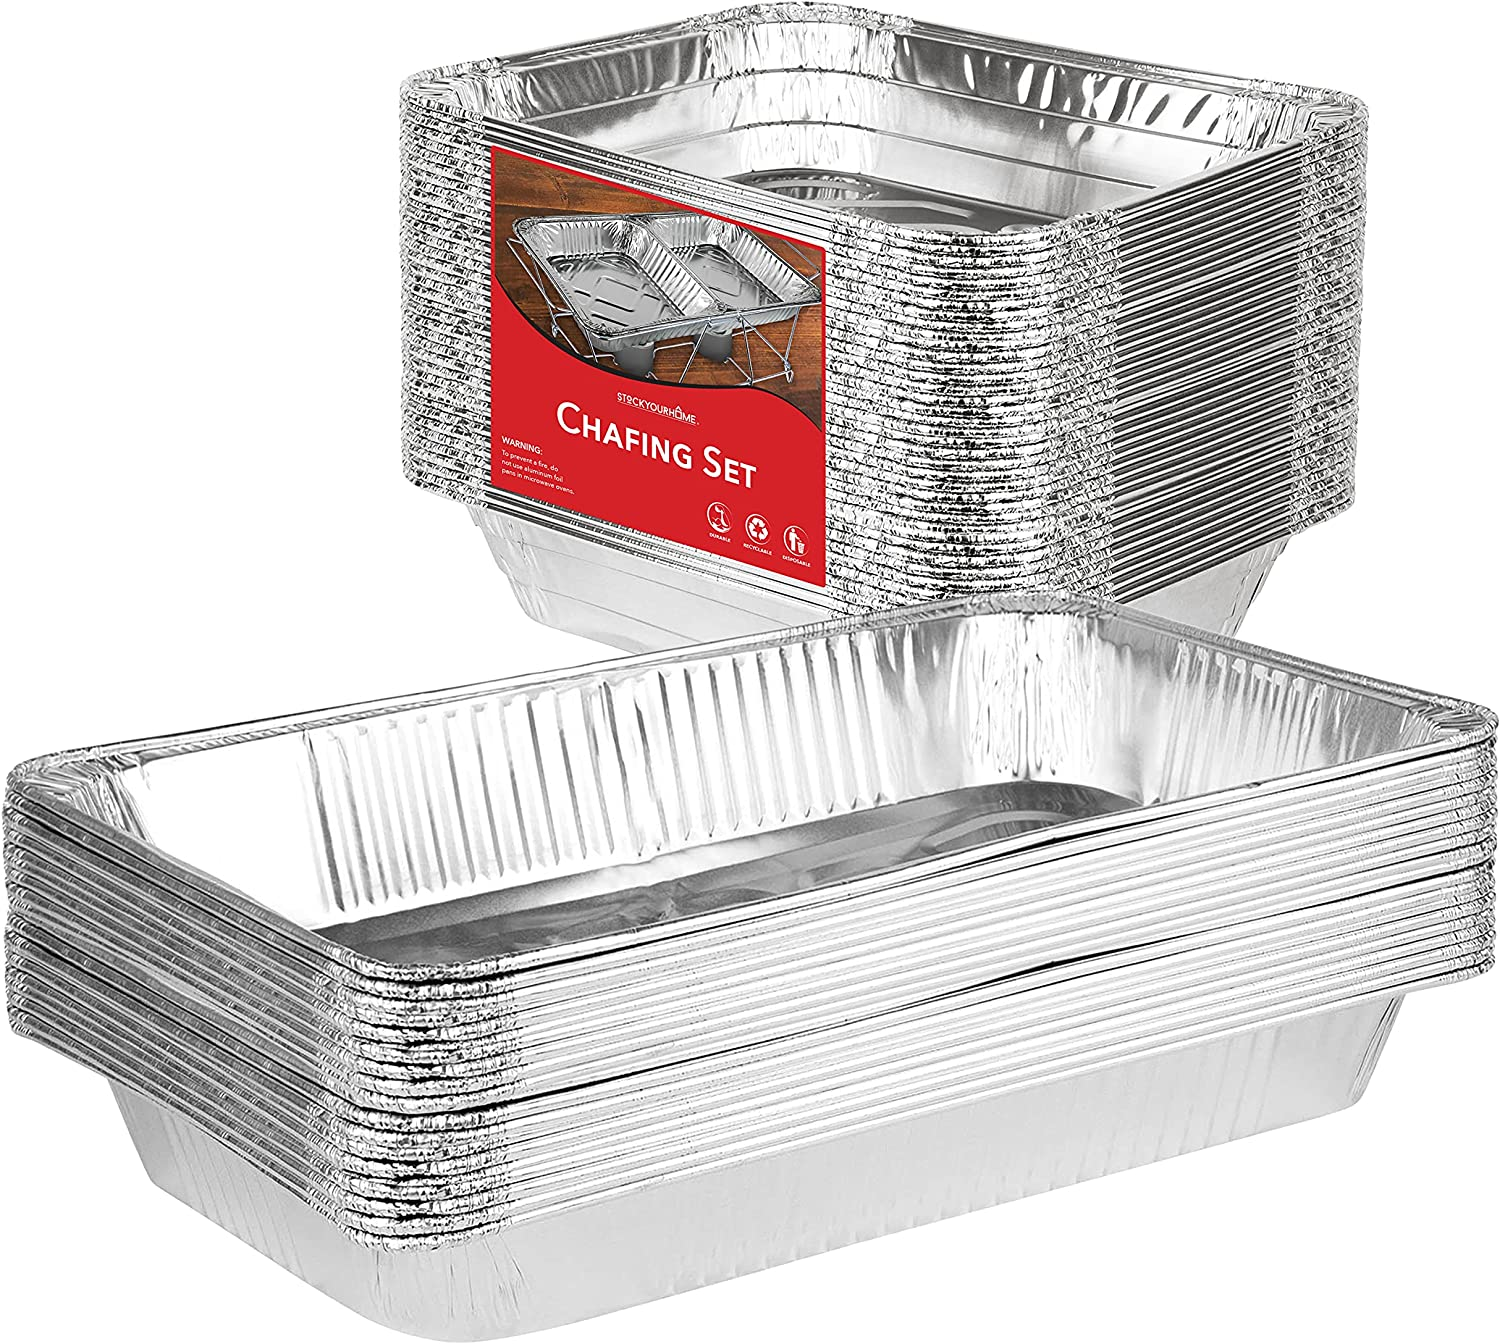 Stock Your Home Chafing Pan Set - 21 x 13 Full Size (5 Pack) - 9 x 13 Half Size (10 Pack) Rectangular Catering Dishes - Disposable Water Pans - Chafing Set for Catering, Buffets, Weddings, Parties